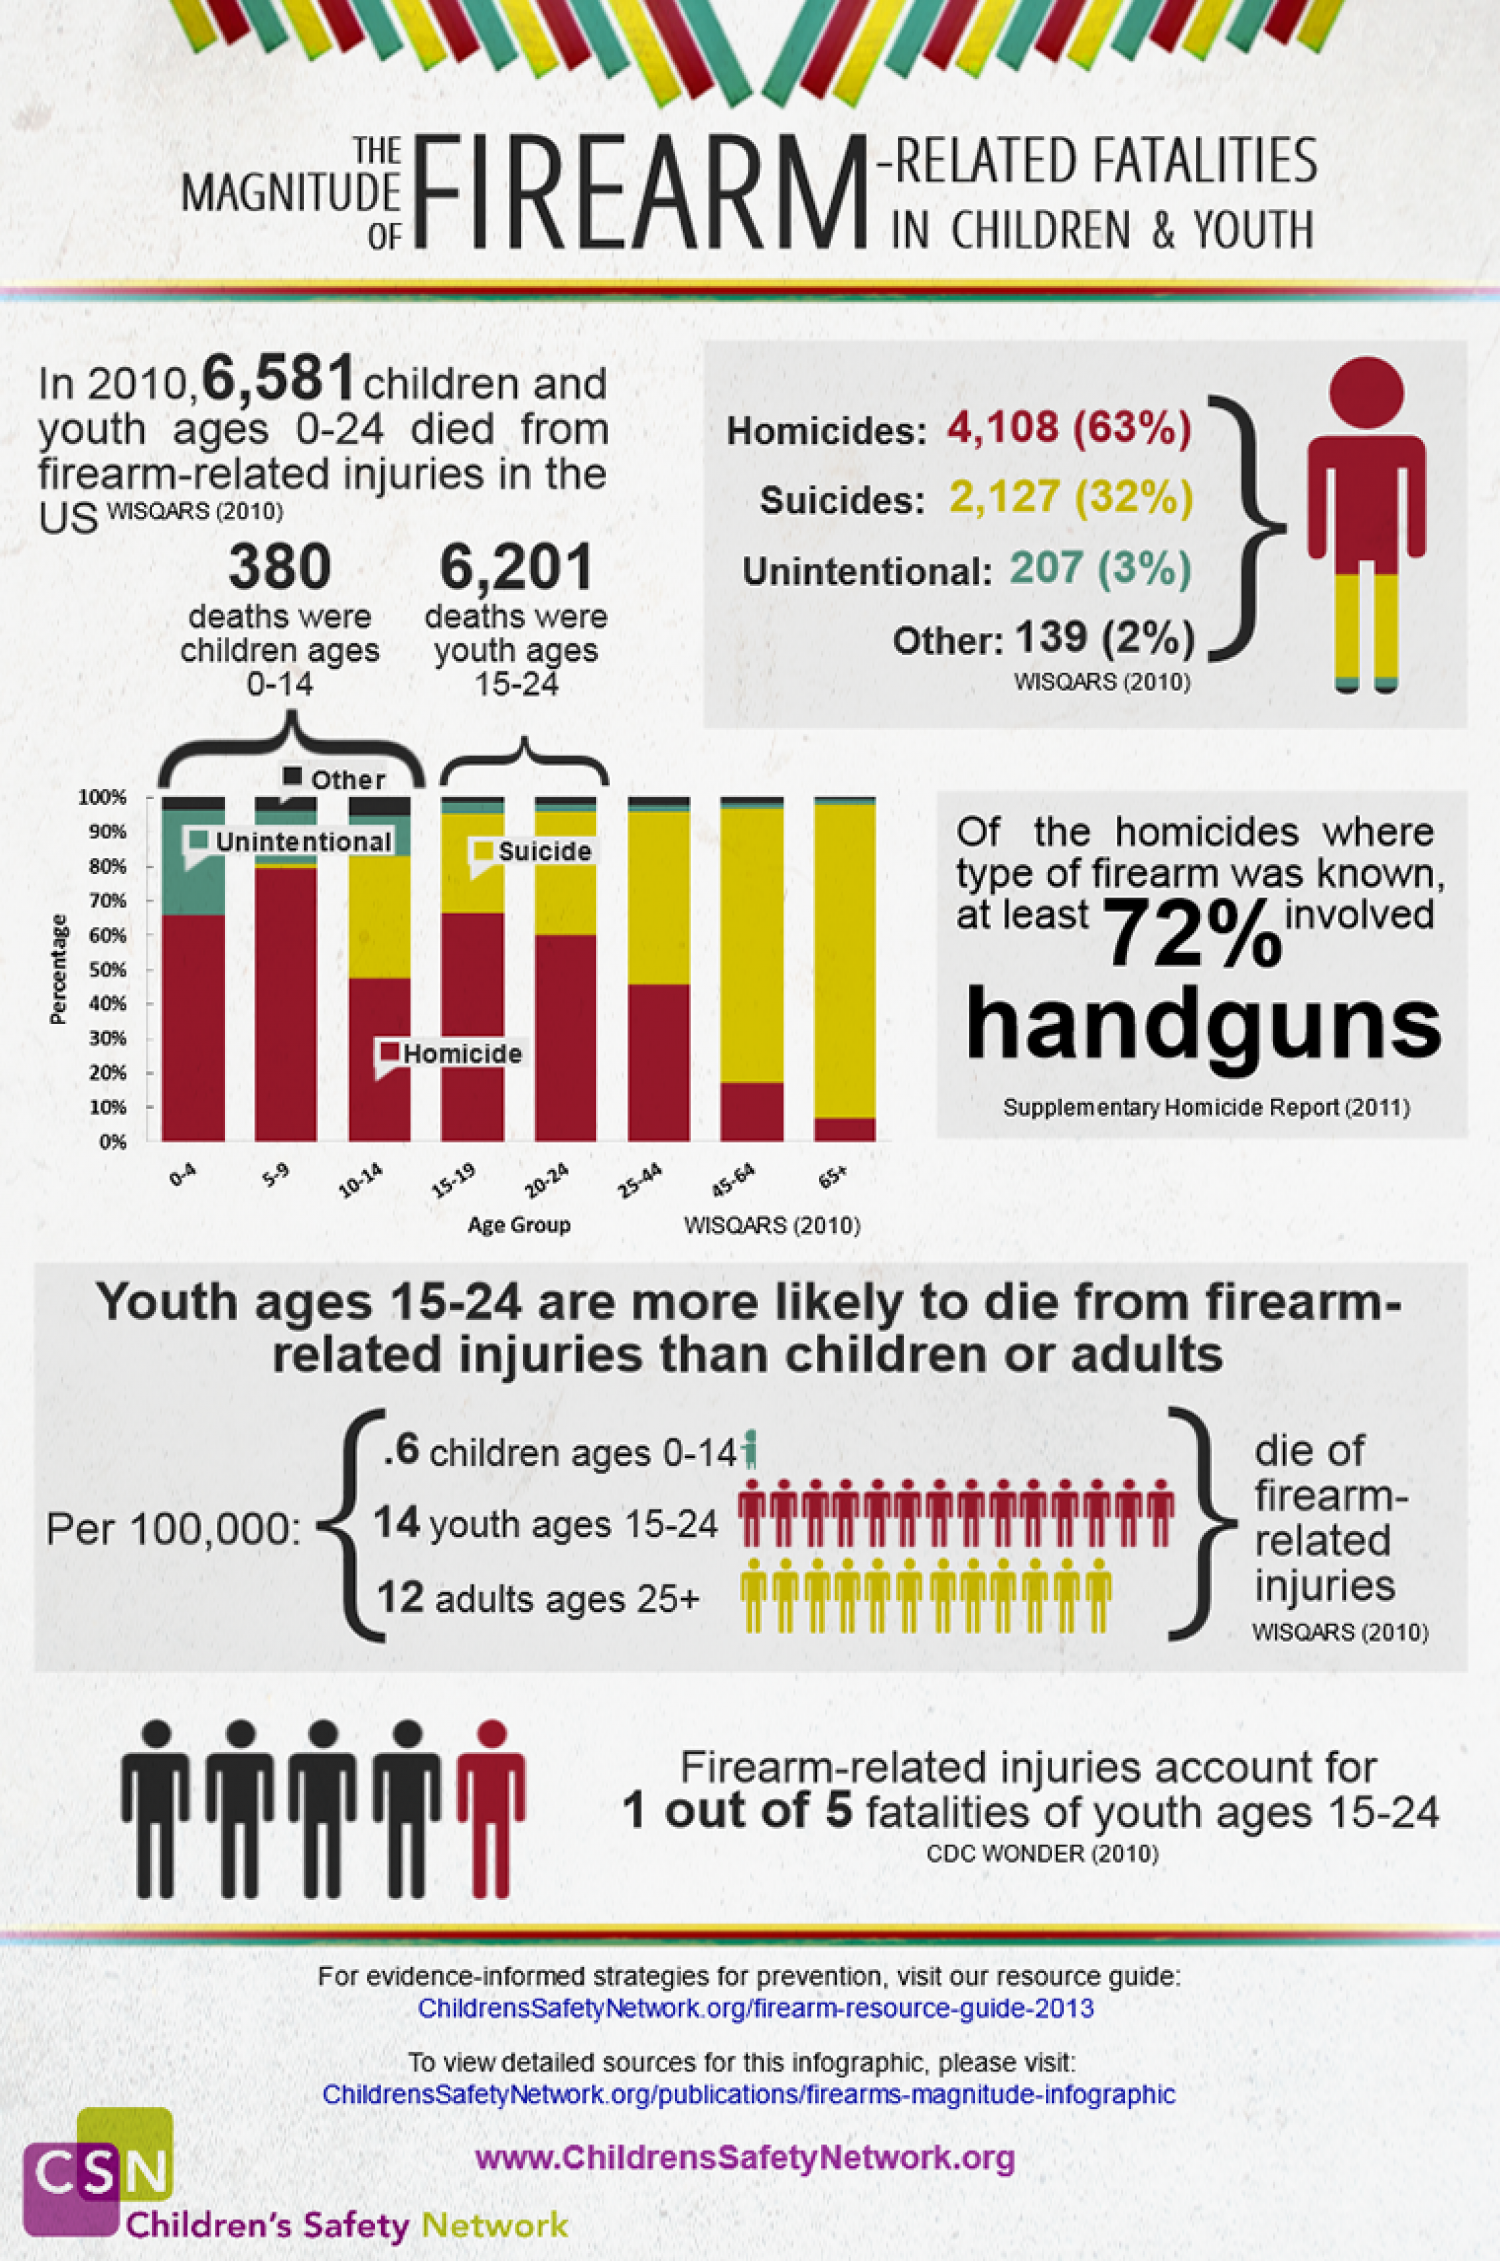 The Magnitude of Firearm-Related Fatalities in Children and Youth Infographic